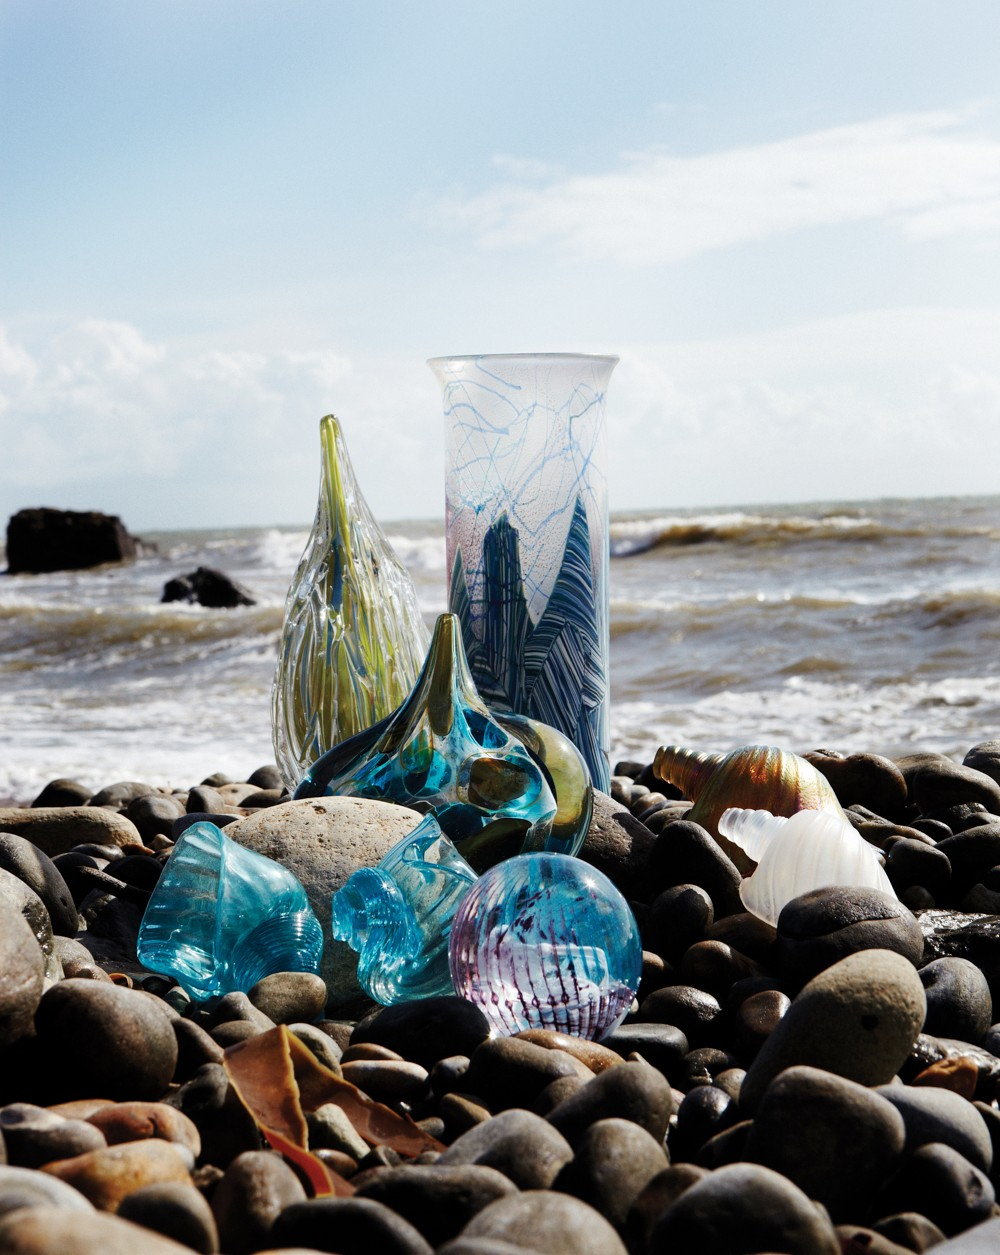 Isle of Wight Studio Glass pieces in their natural setting on the beach